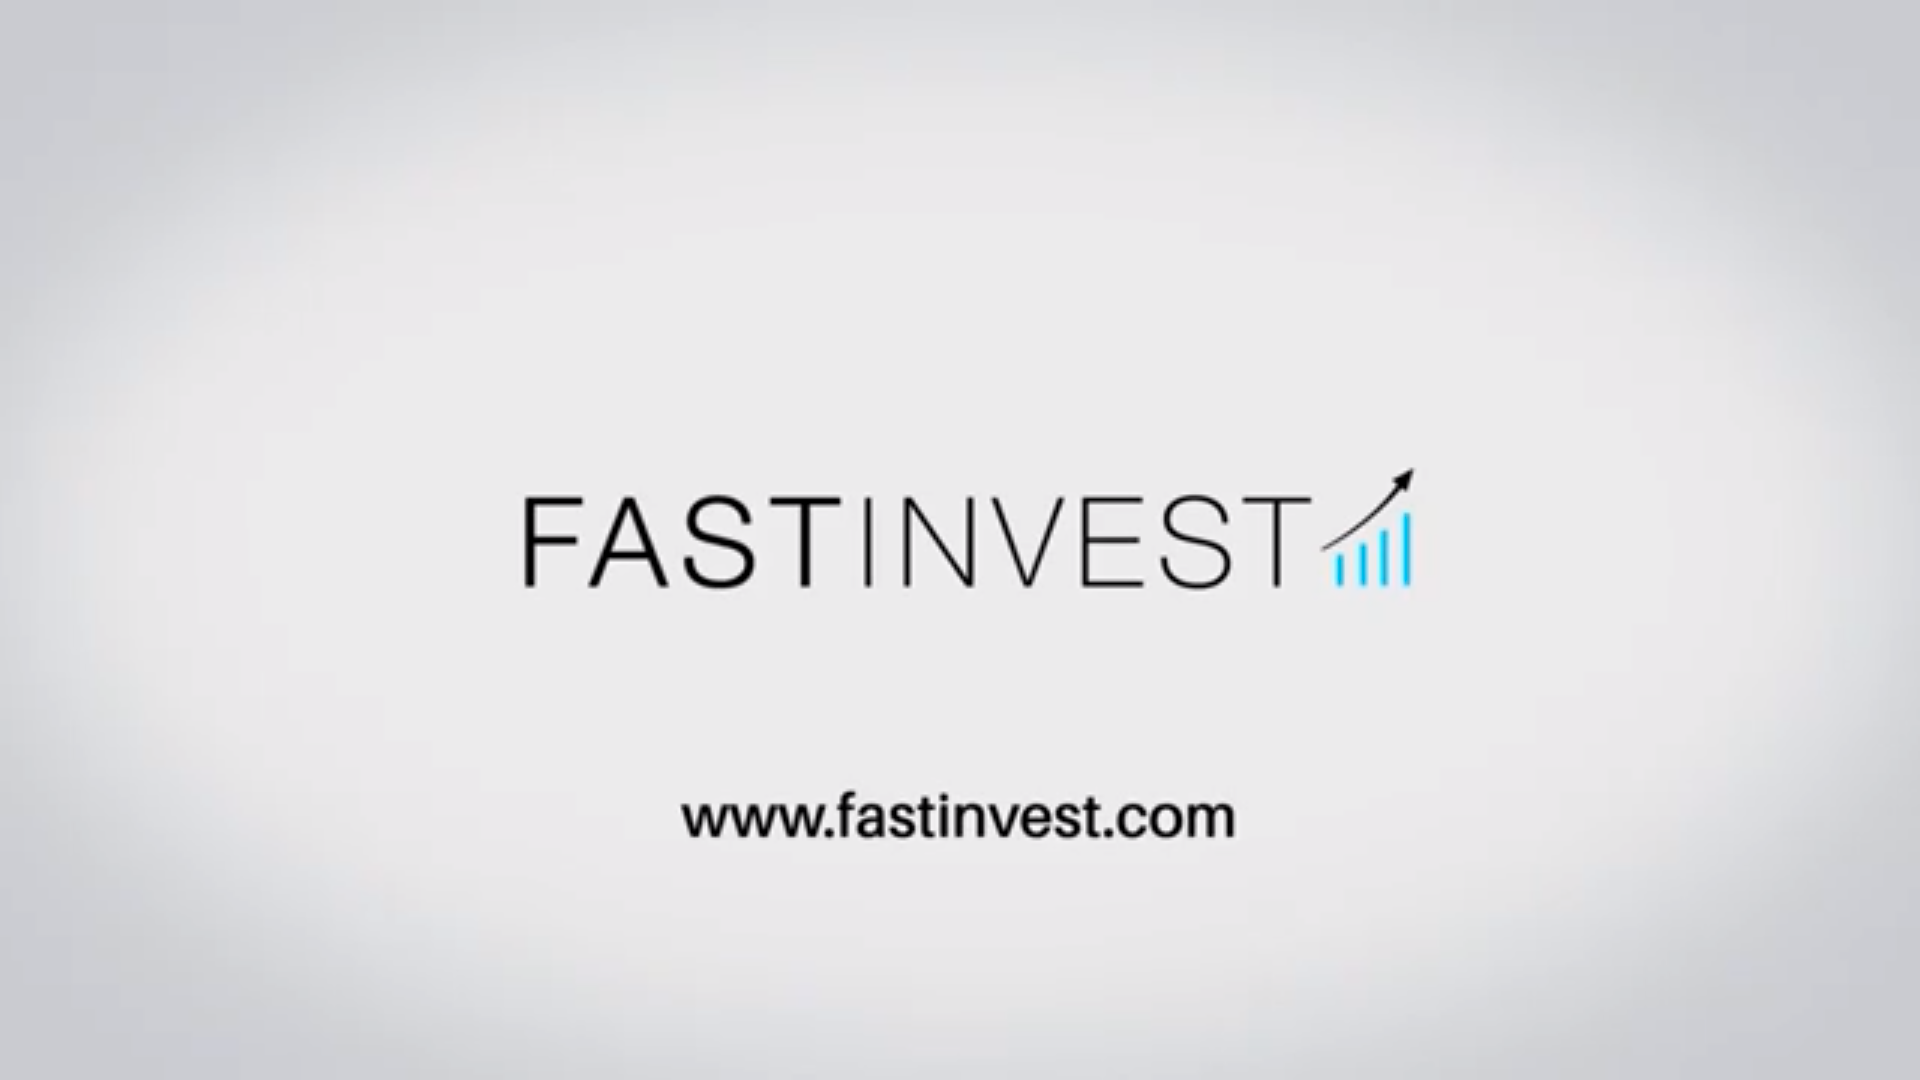 explication fastinvest buyback moneyback